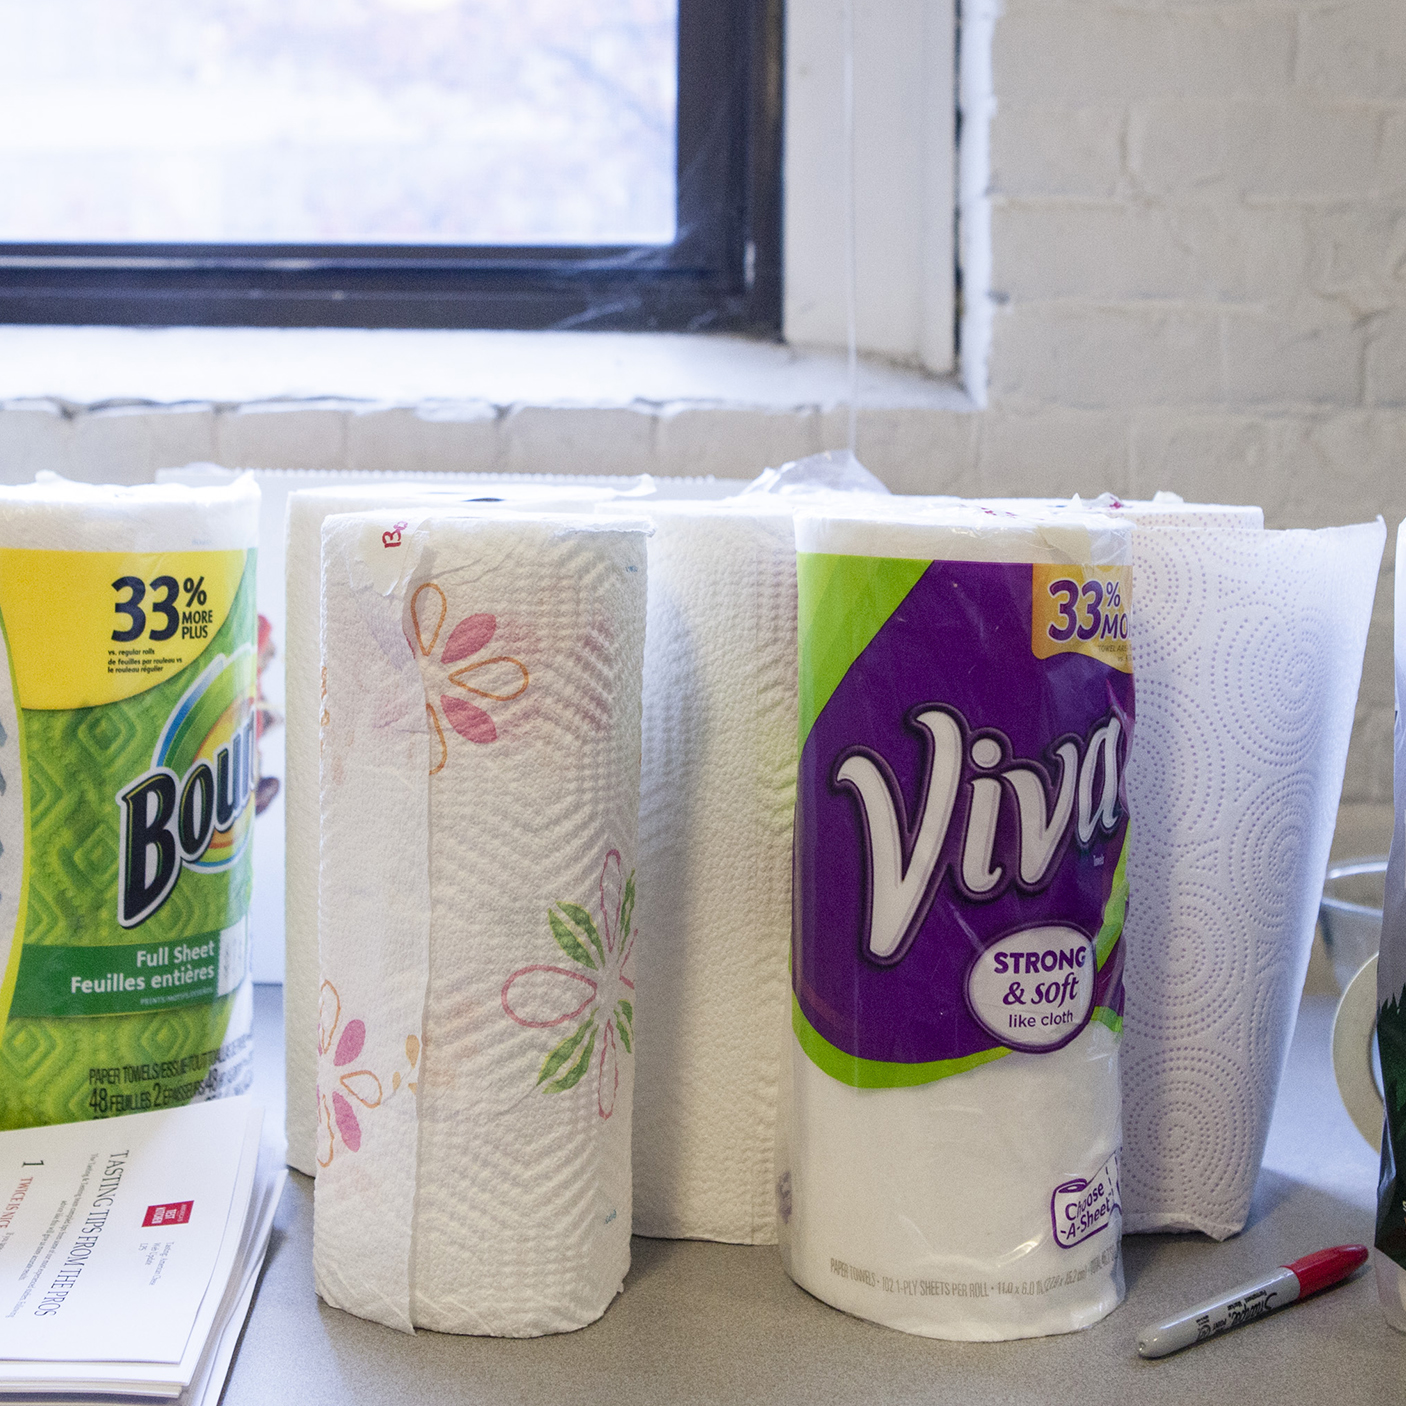 paper towel research on viva According to independent research performed by the sweet home what is the strongest brand of paper towel a: what is the history of viva paper towels.